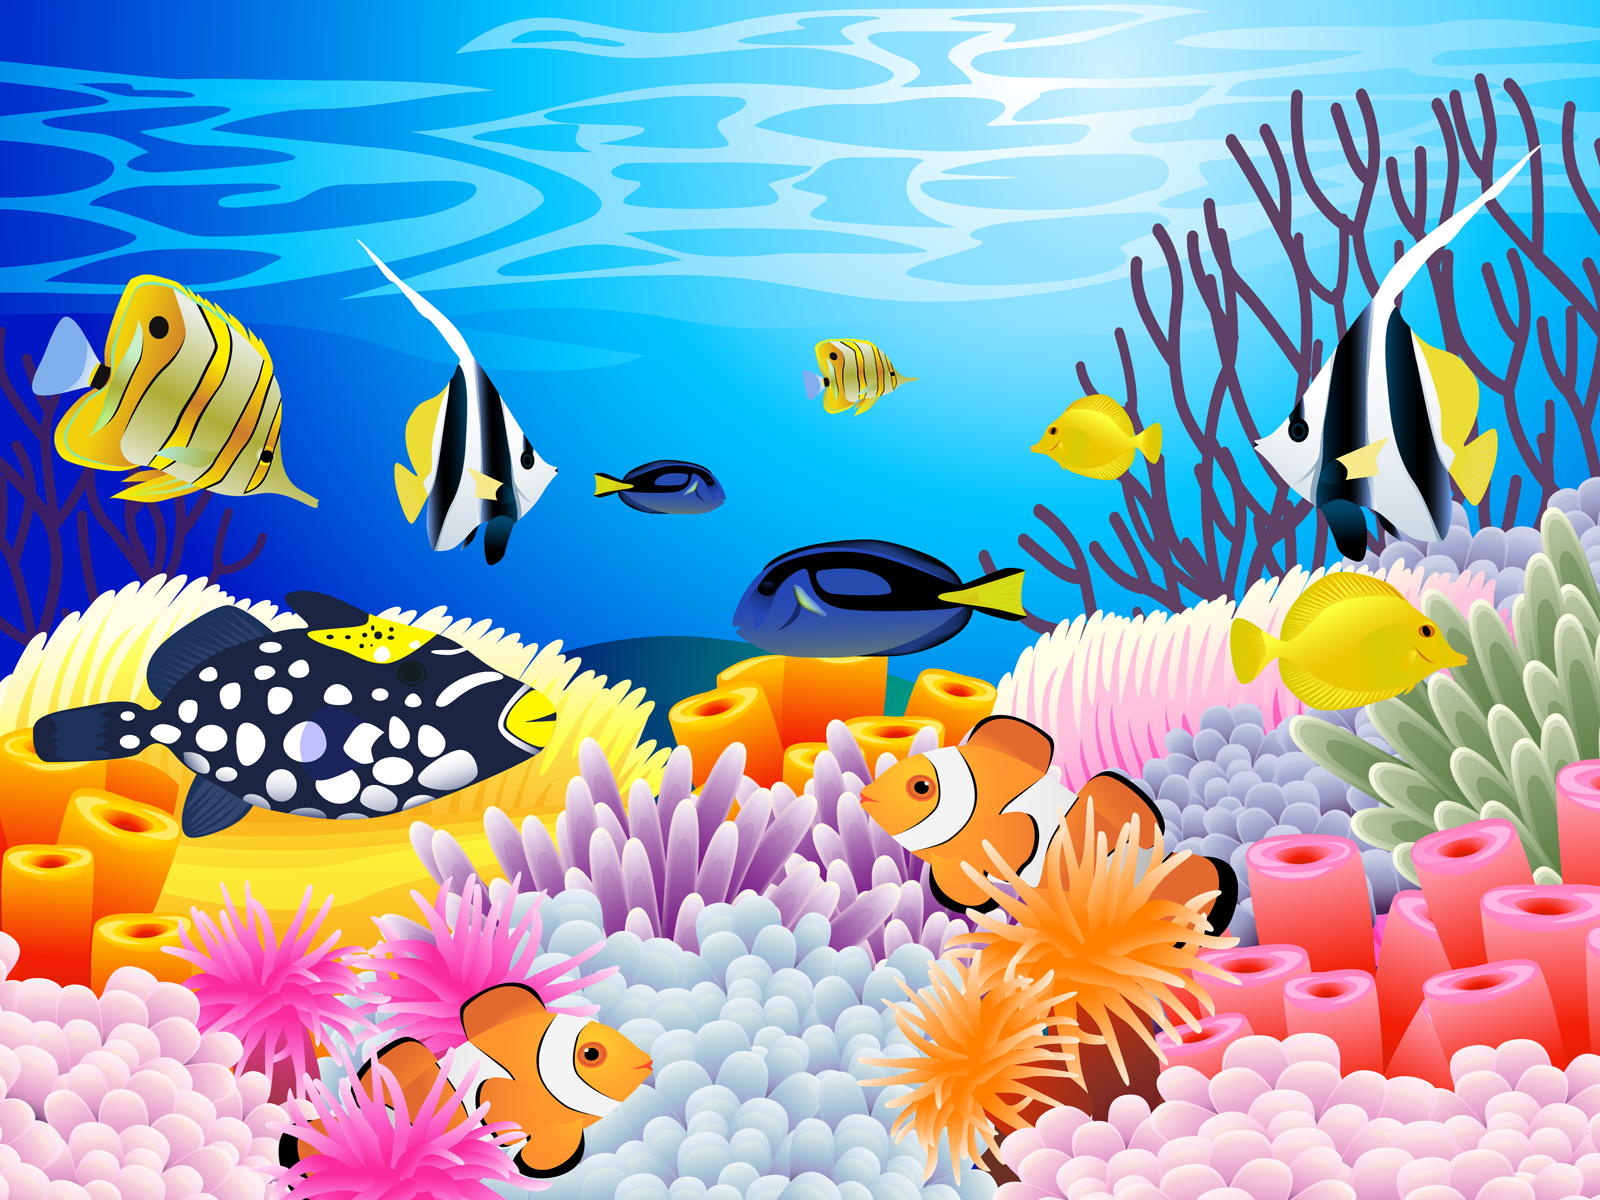 Undersea picture of colorful. Clipart ocean underwater